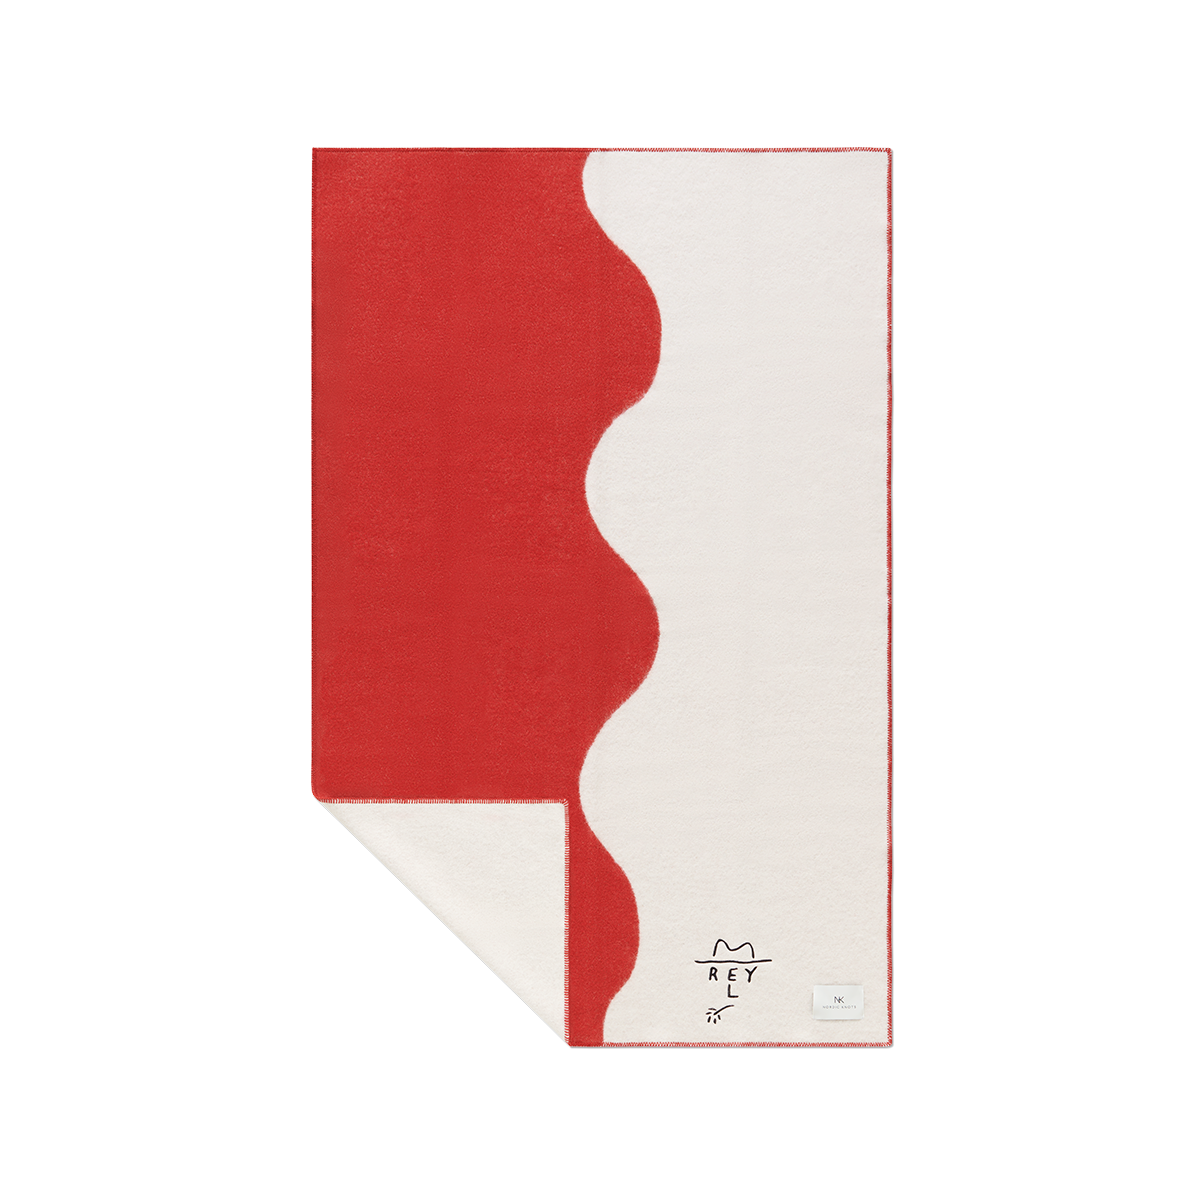 Product image of wool blanket El Rey, in the colors red and cream with a wavy divider down the middle.